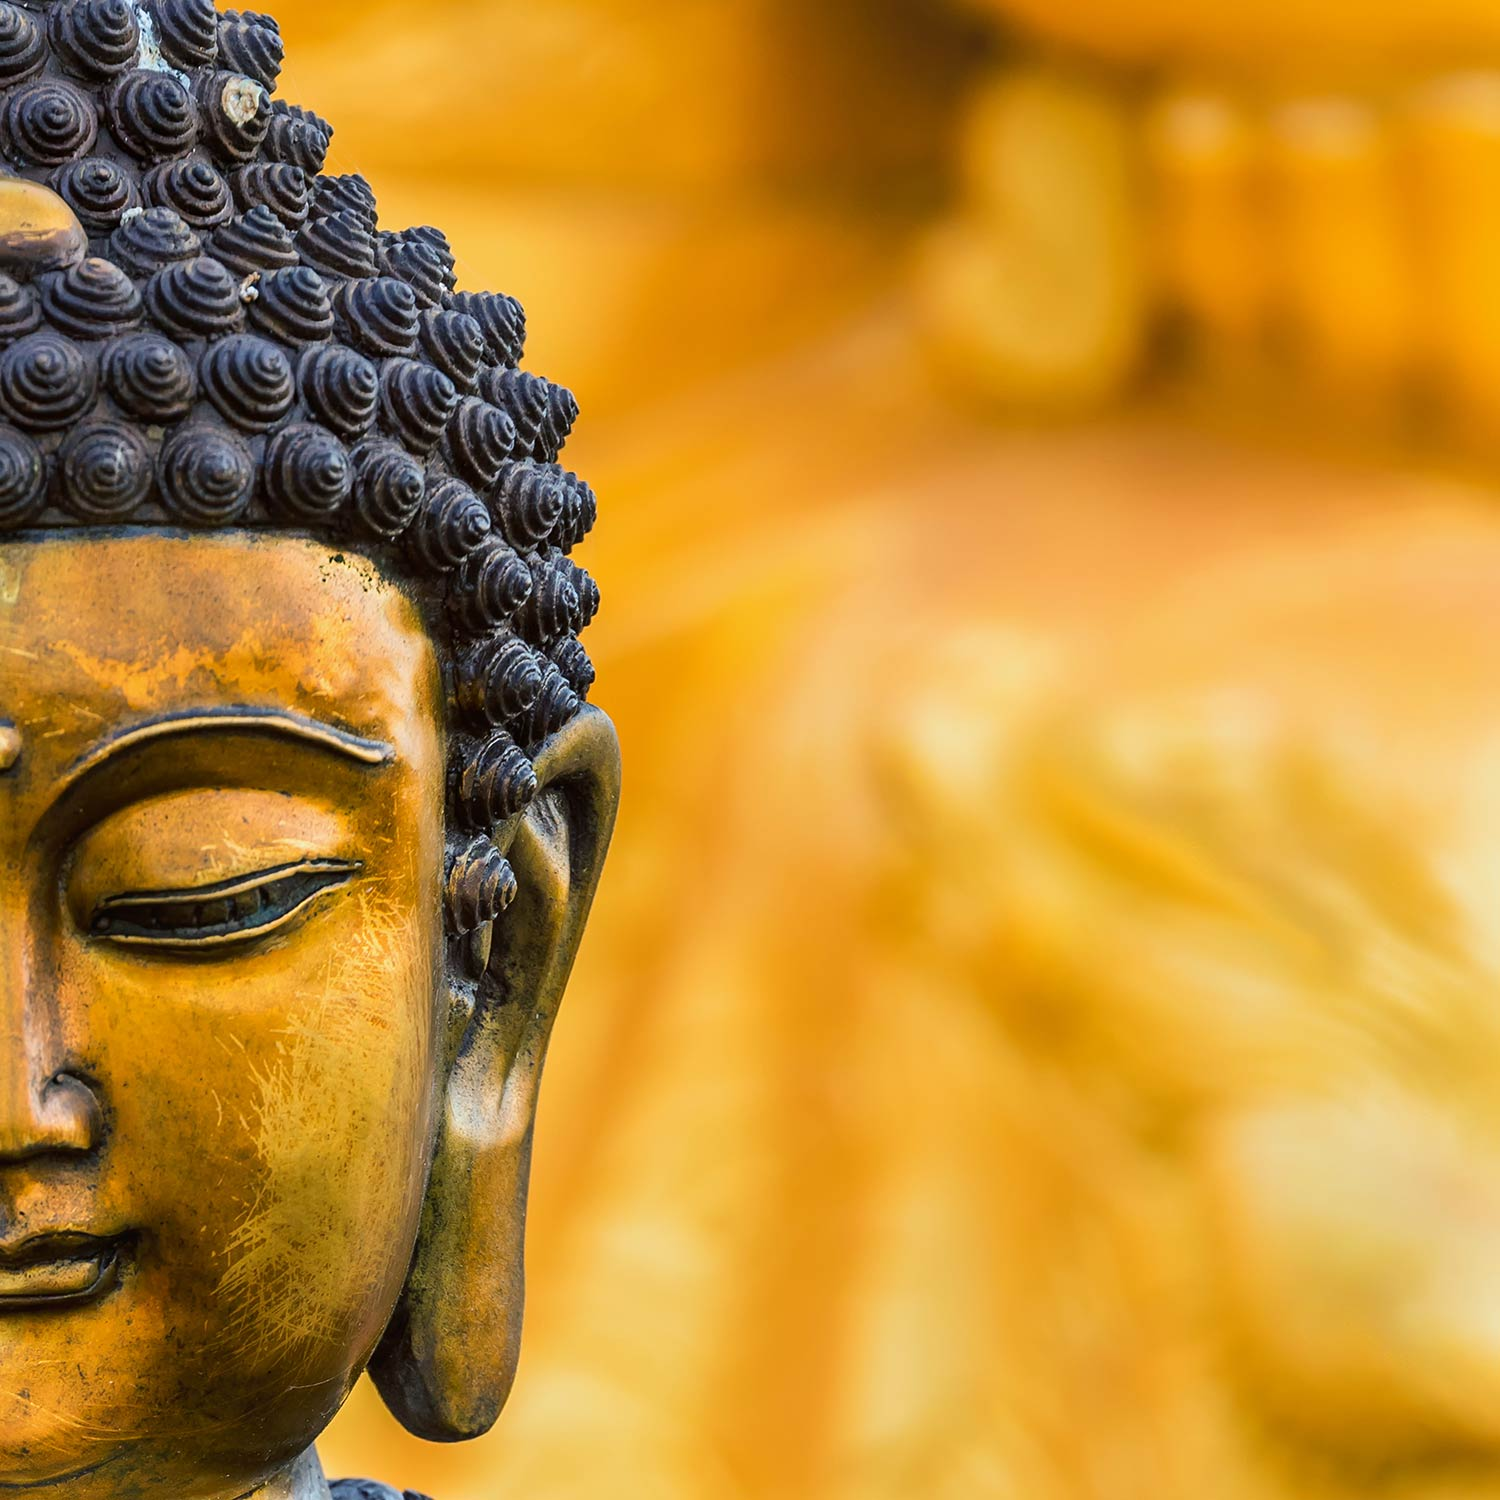 Buddha Wallpaper Hd Posted By Christopher Peltier